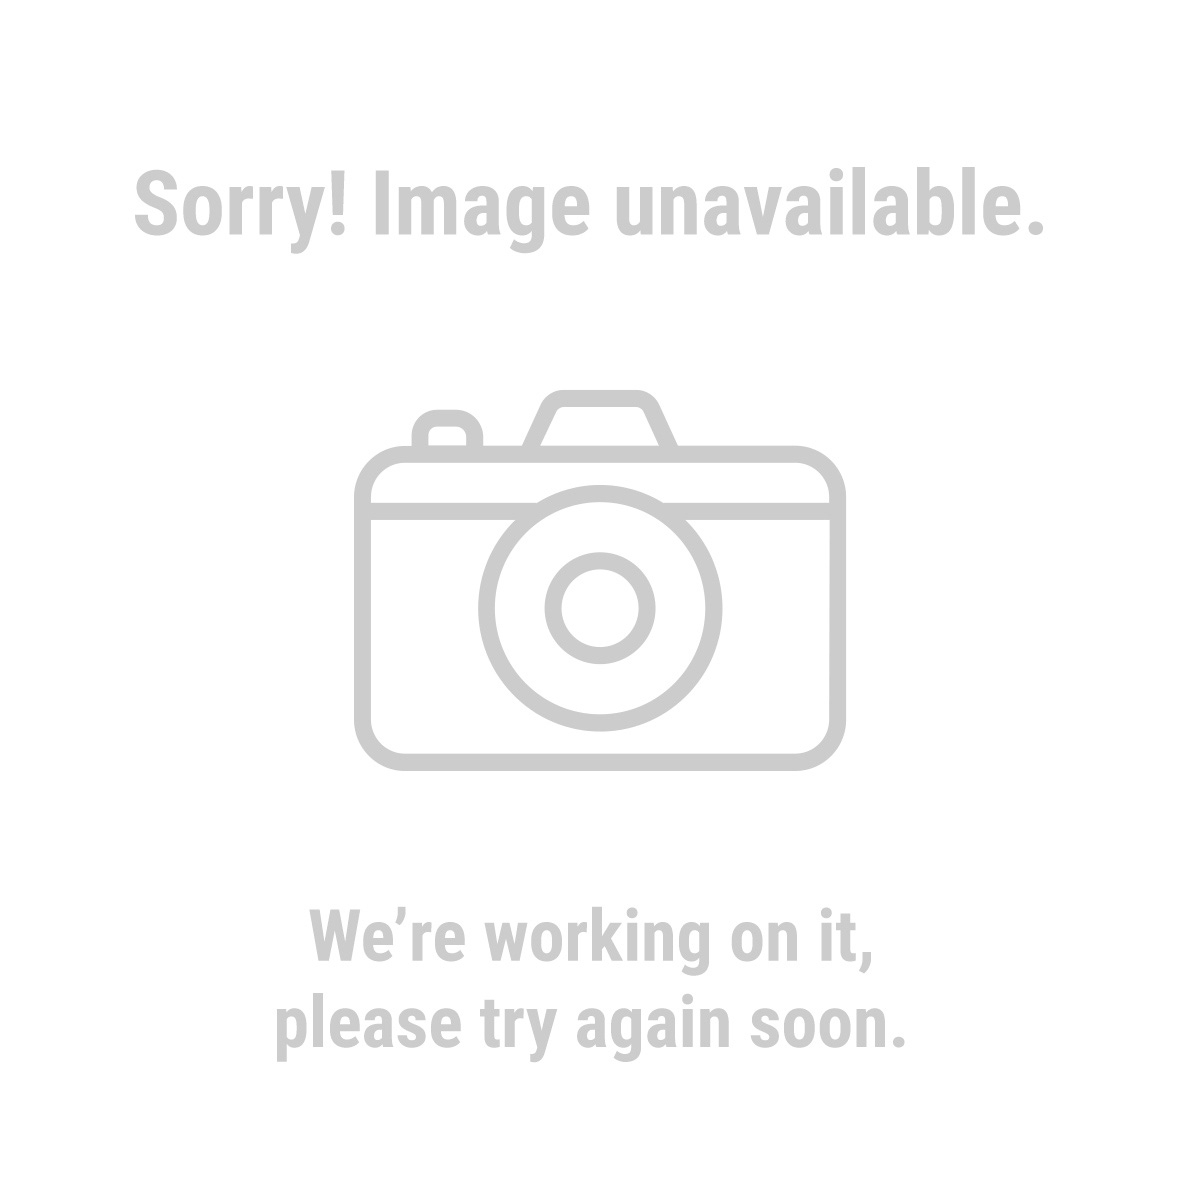 HARDY 61989 Cotton Work Gloves with PVC Dots 6 Pr